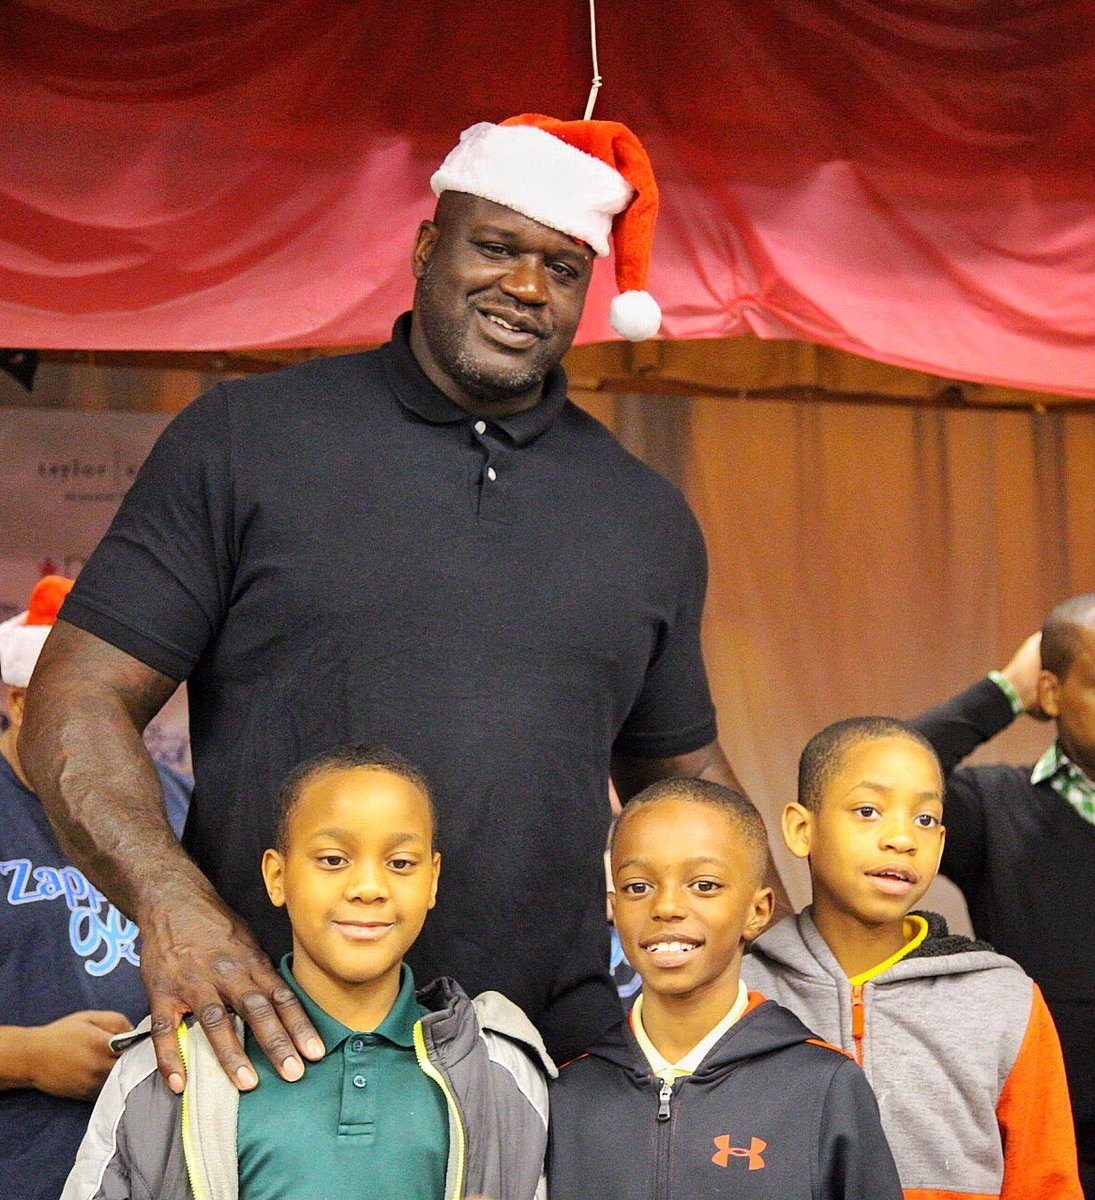 Another successful Shaq-A-Claus is in the books! 🎅 .@SHAQ spread some holiday cheer with the students and faculty of Kelley Lake Elementary School! 🎄